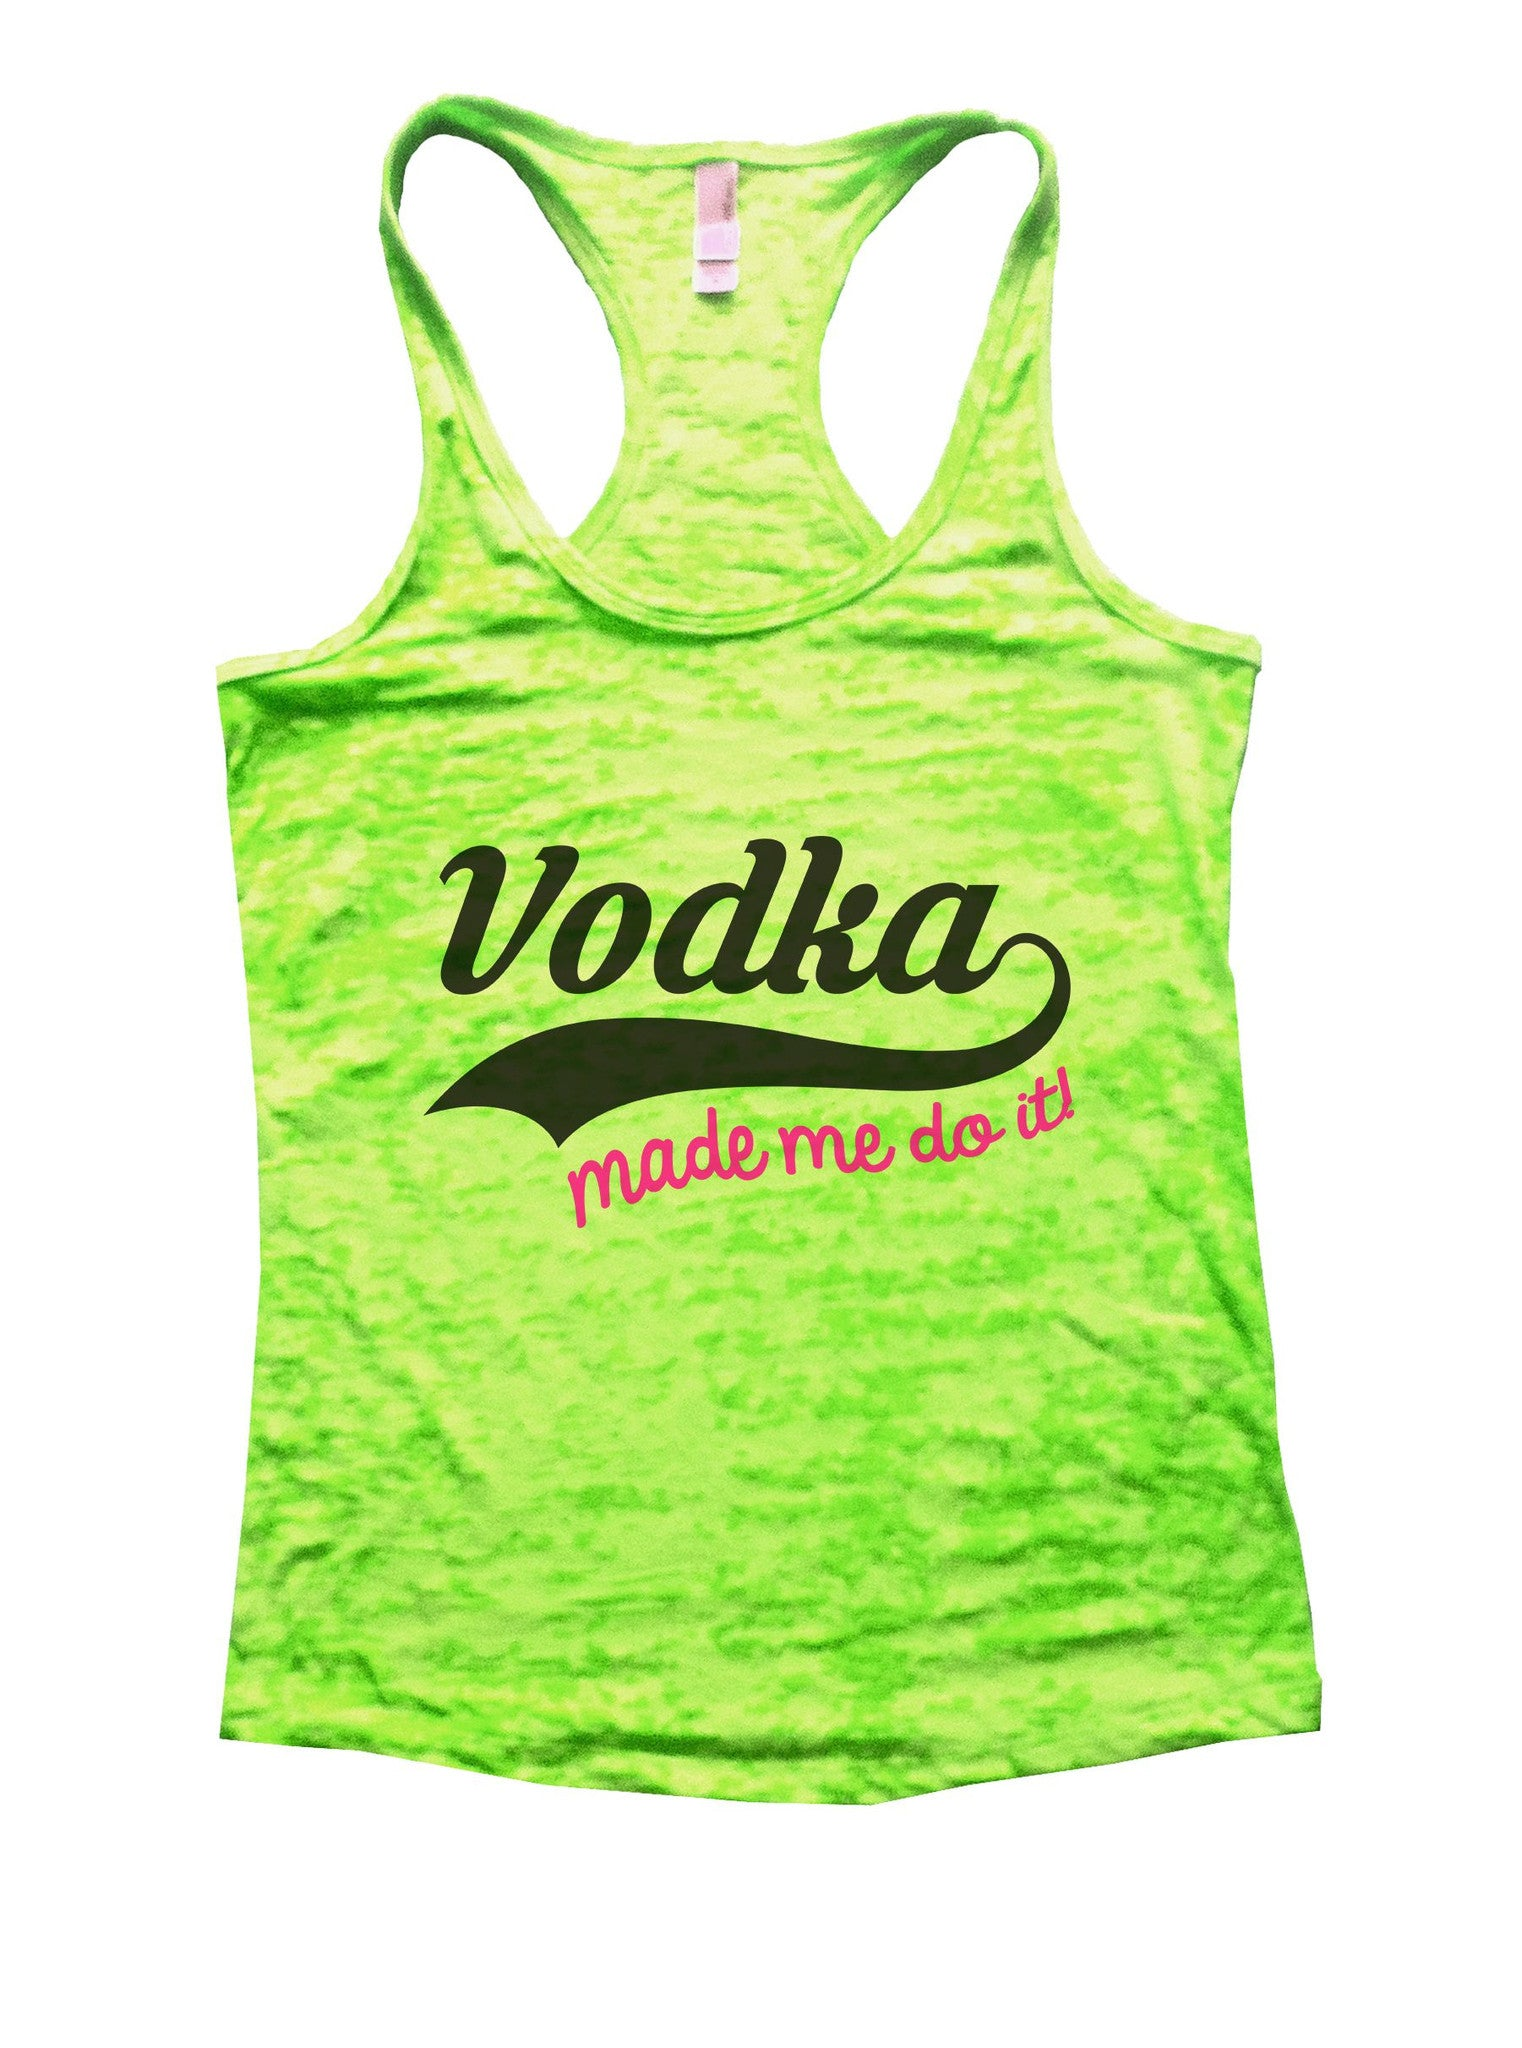 Vodka Made Me Do It! Burnout Tank Top By BurnoutTankTops.com - 1083 - Funny Shirts Tank Tops Burnouts and Triblends  - 1